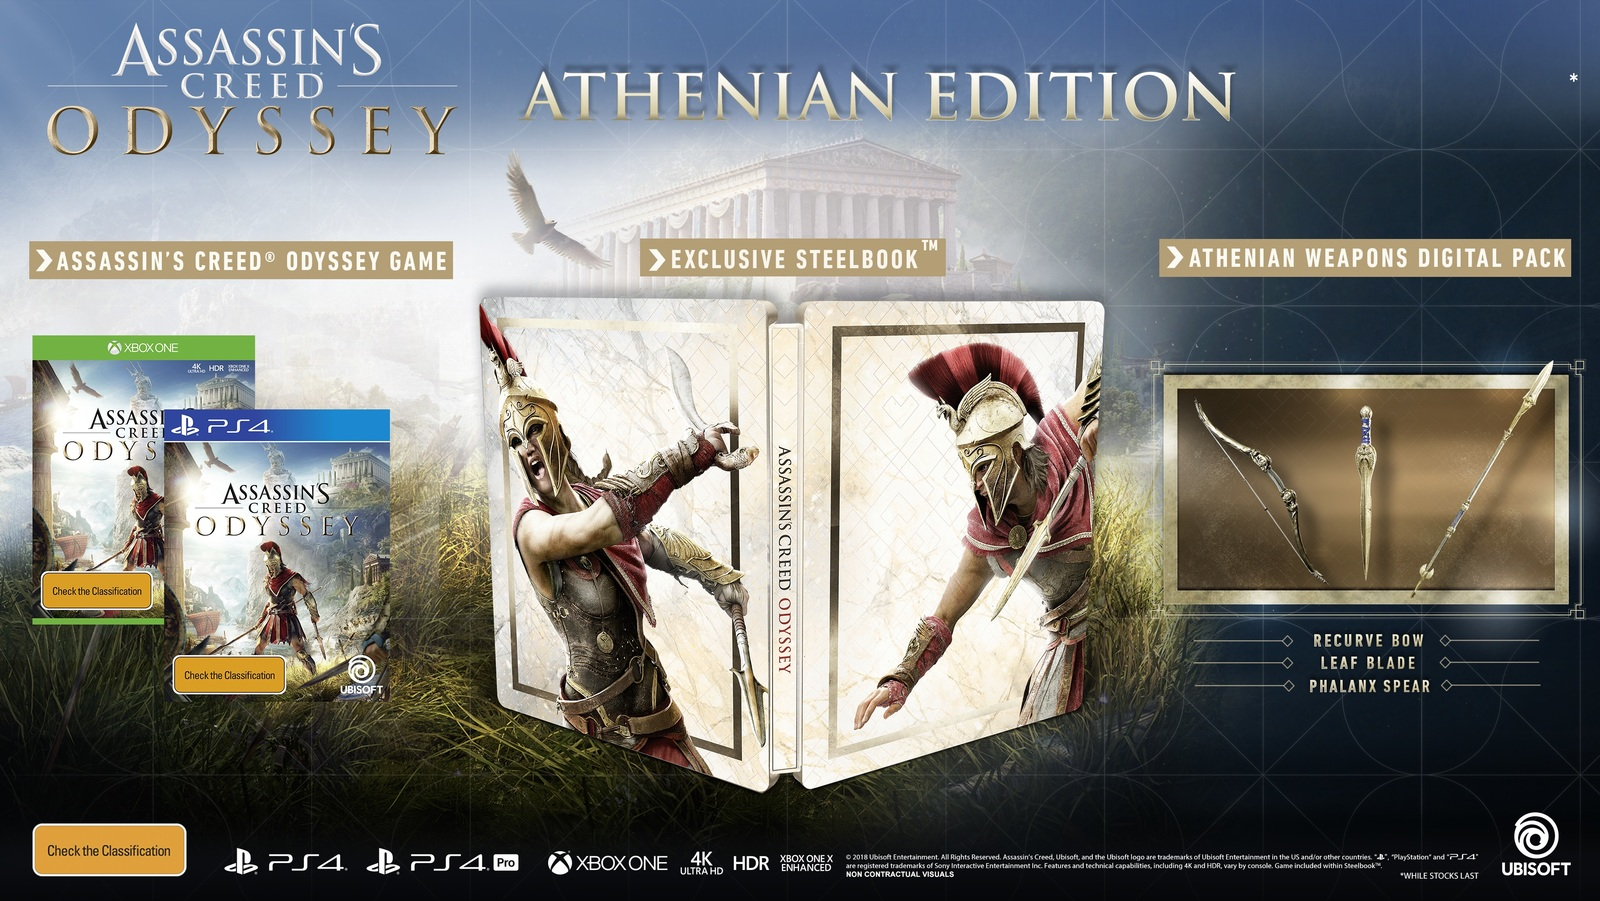 Assassin's Creed Odyssey Athenian Edition